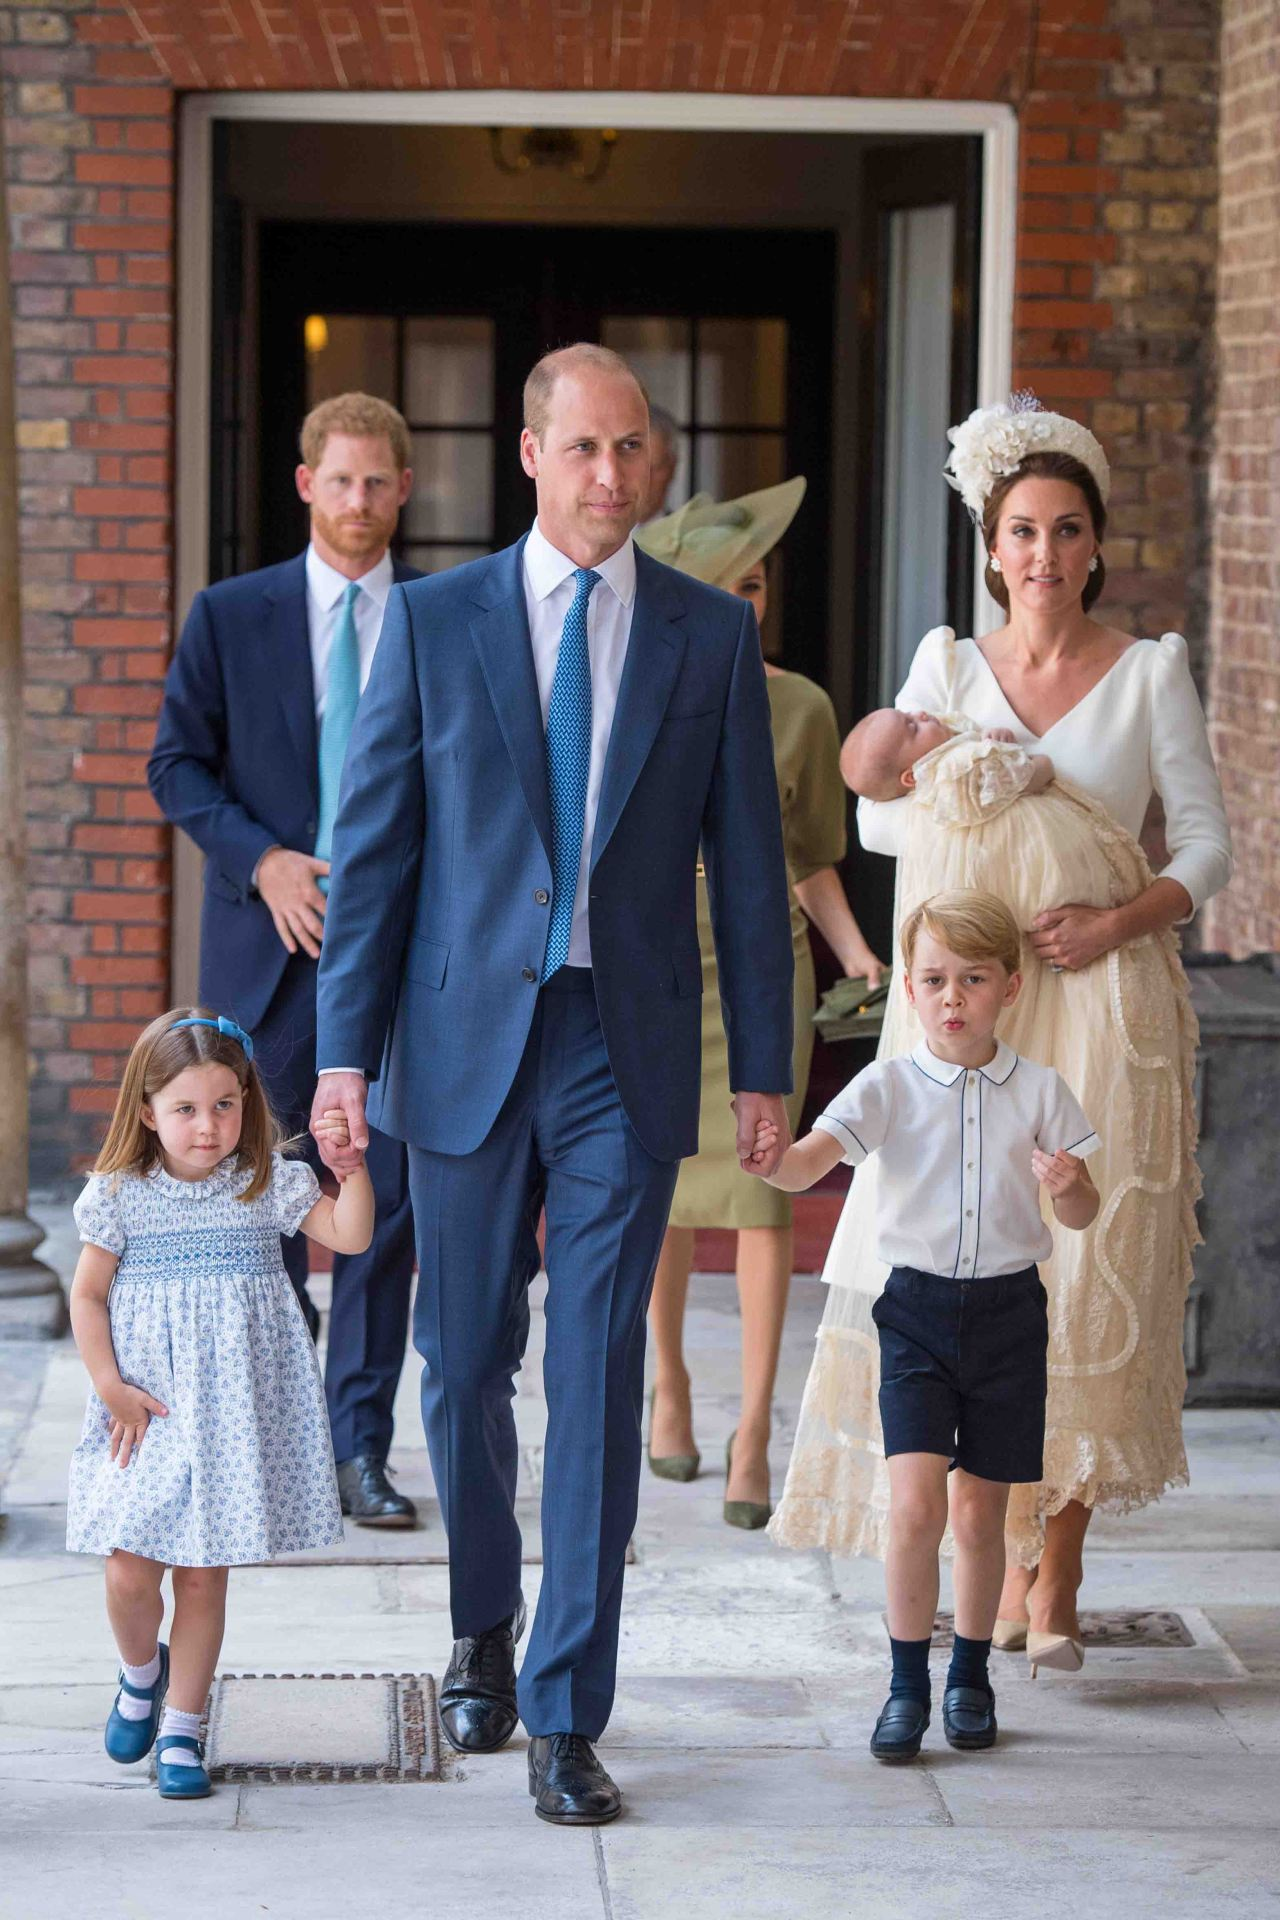 41 times Prince George was everyone's favourite Prince